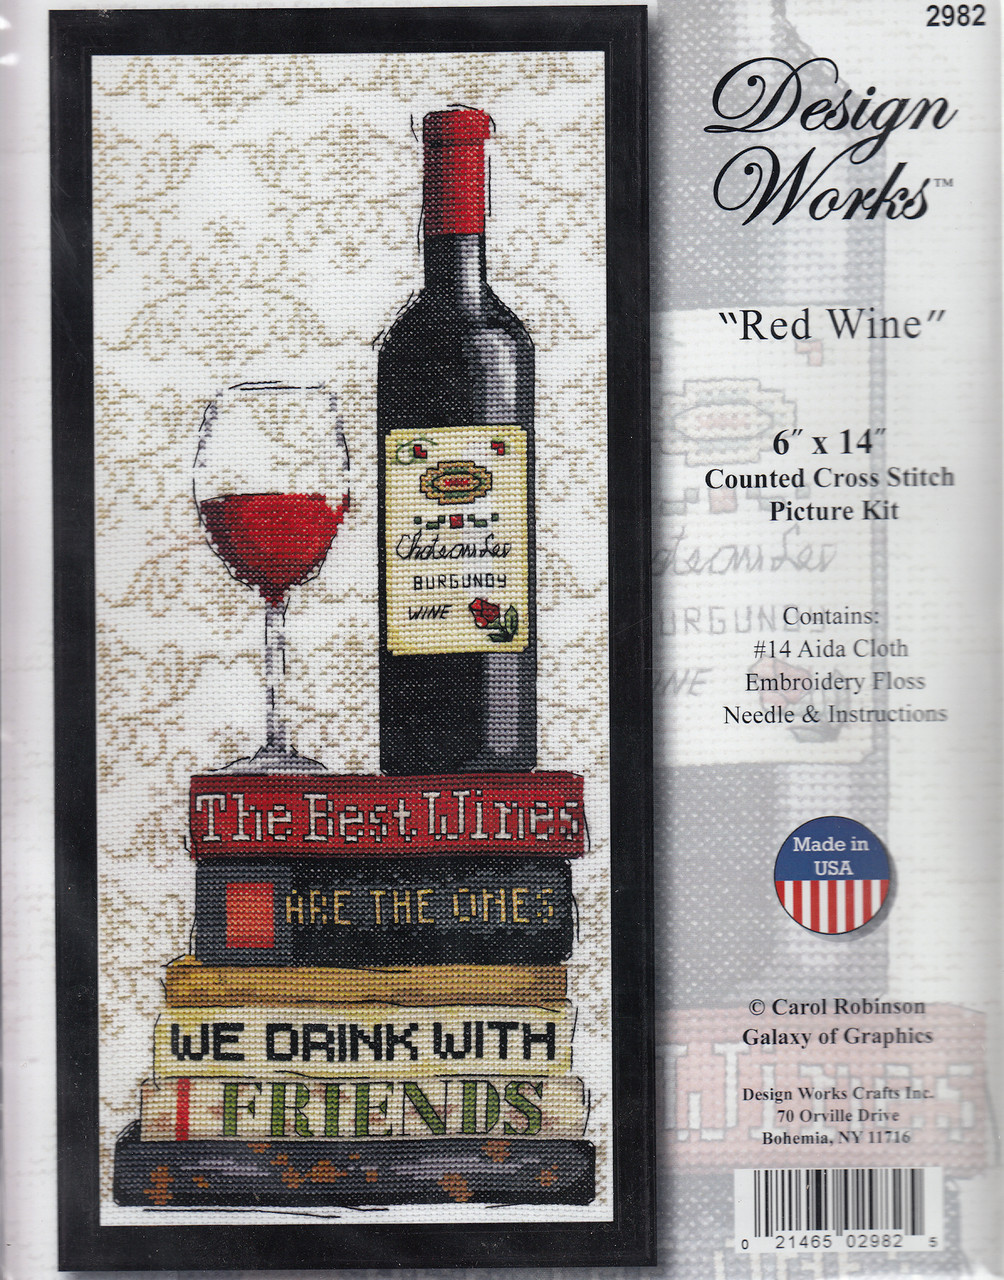 Design Works - Red Wine